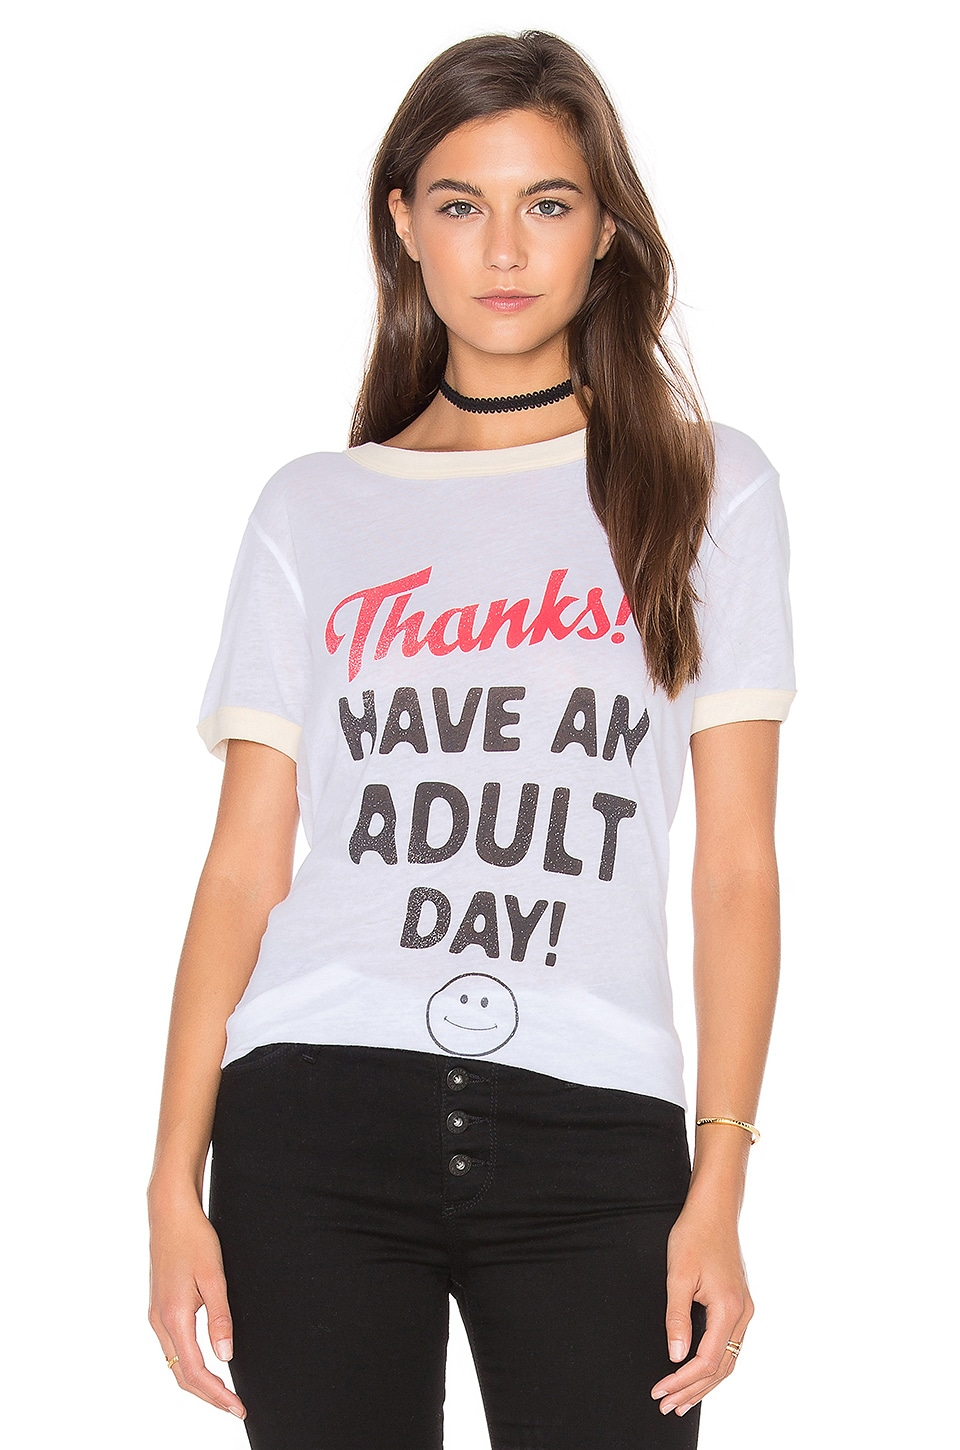 Adult Day Top by Wildfox Couture